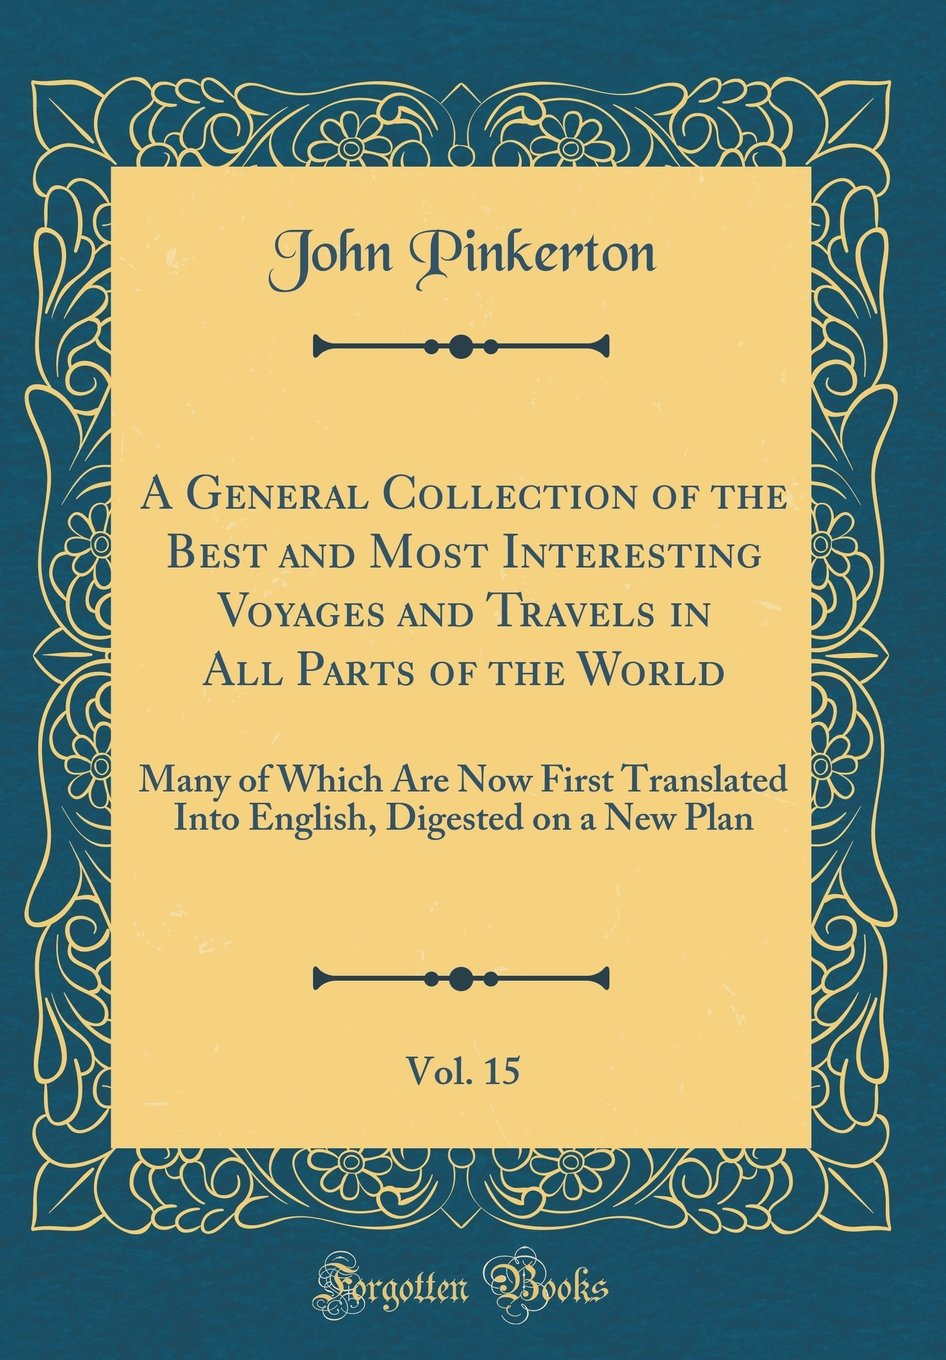 Download A General Collection of the Best and Most Interesting Voyages and Travels in All Parts of the World, Vol. 15: Many of Which Are Now First Translated ... Digested on a New Plan (Classic Reprint) ebook